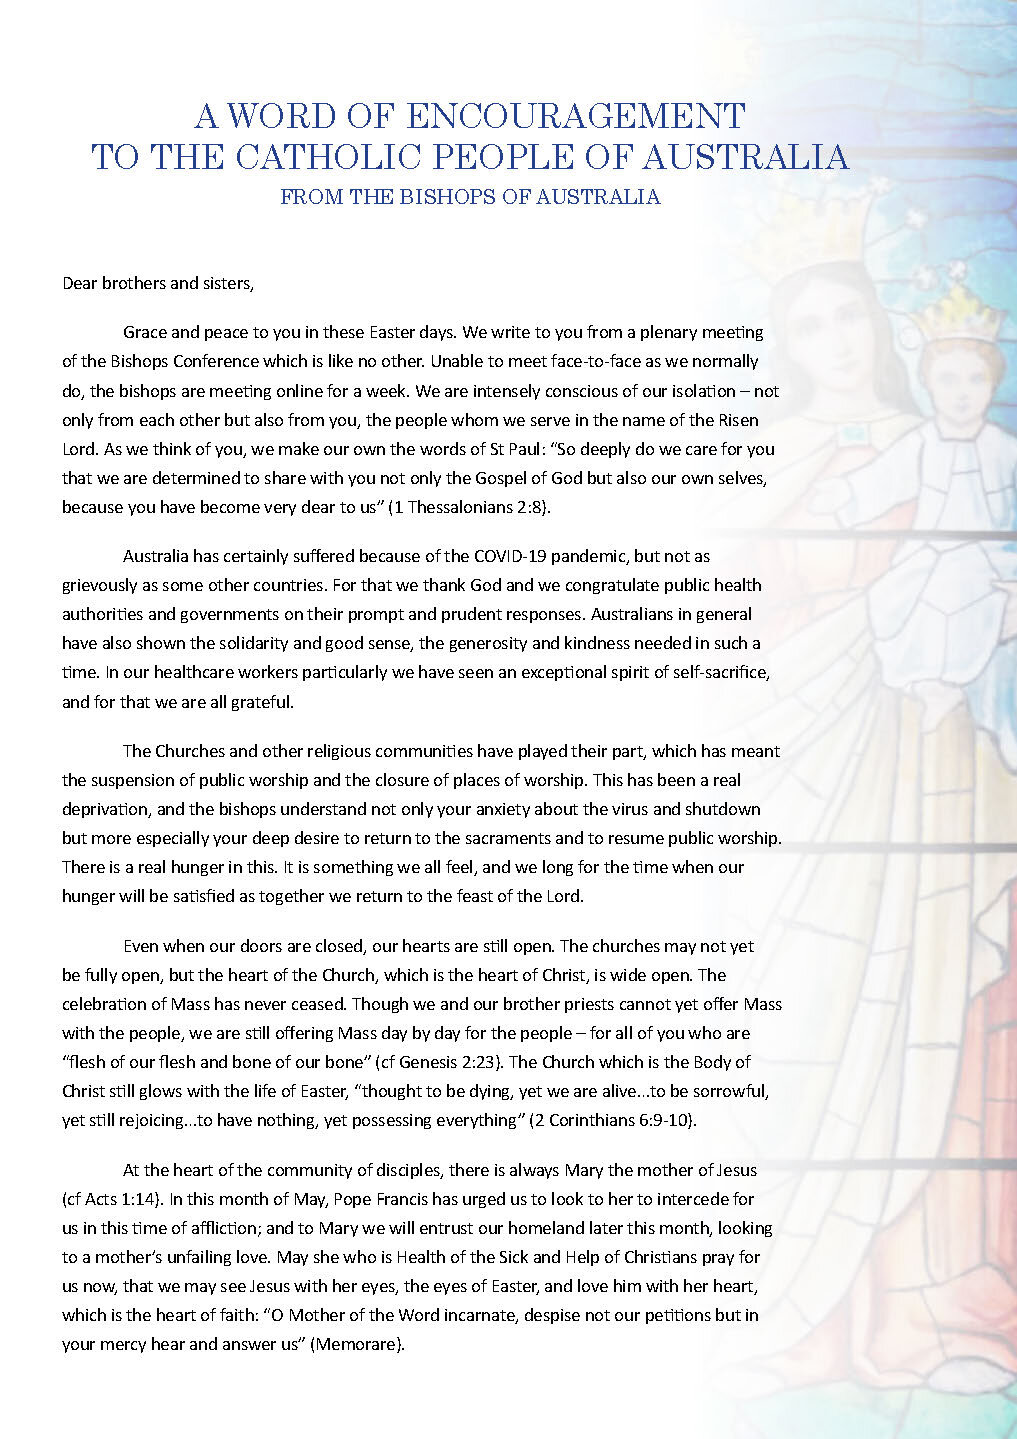 Word of Encouragement to the Catholic People of Australia_Page_1.jpg